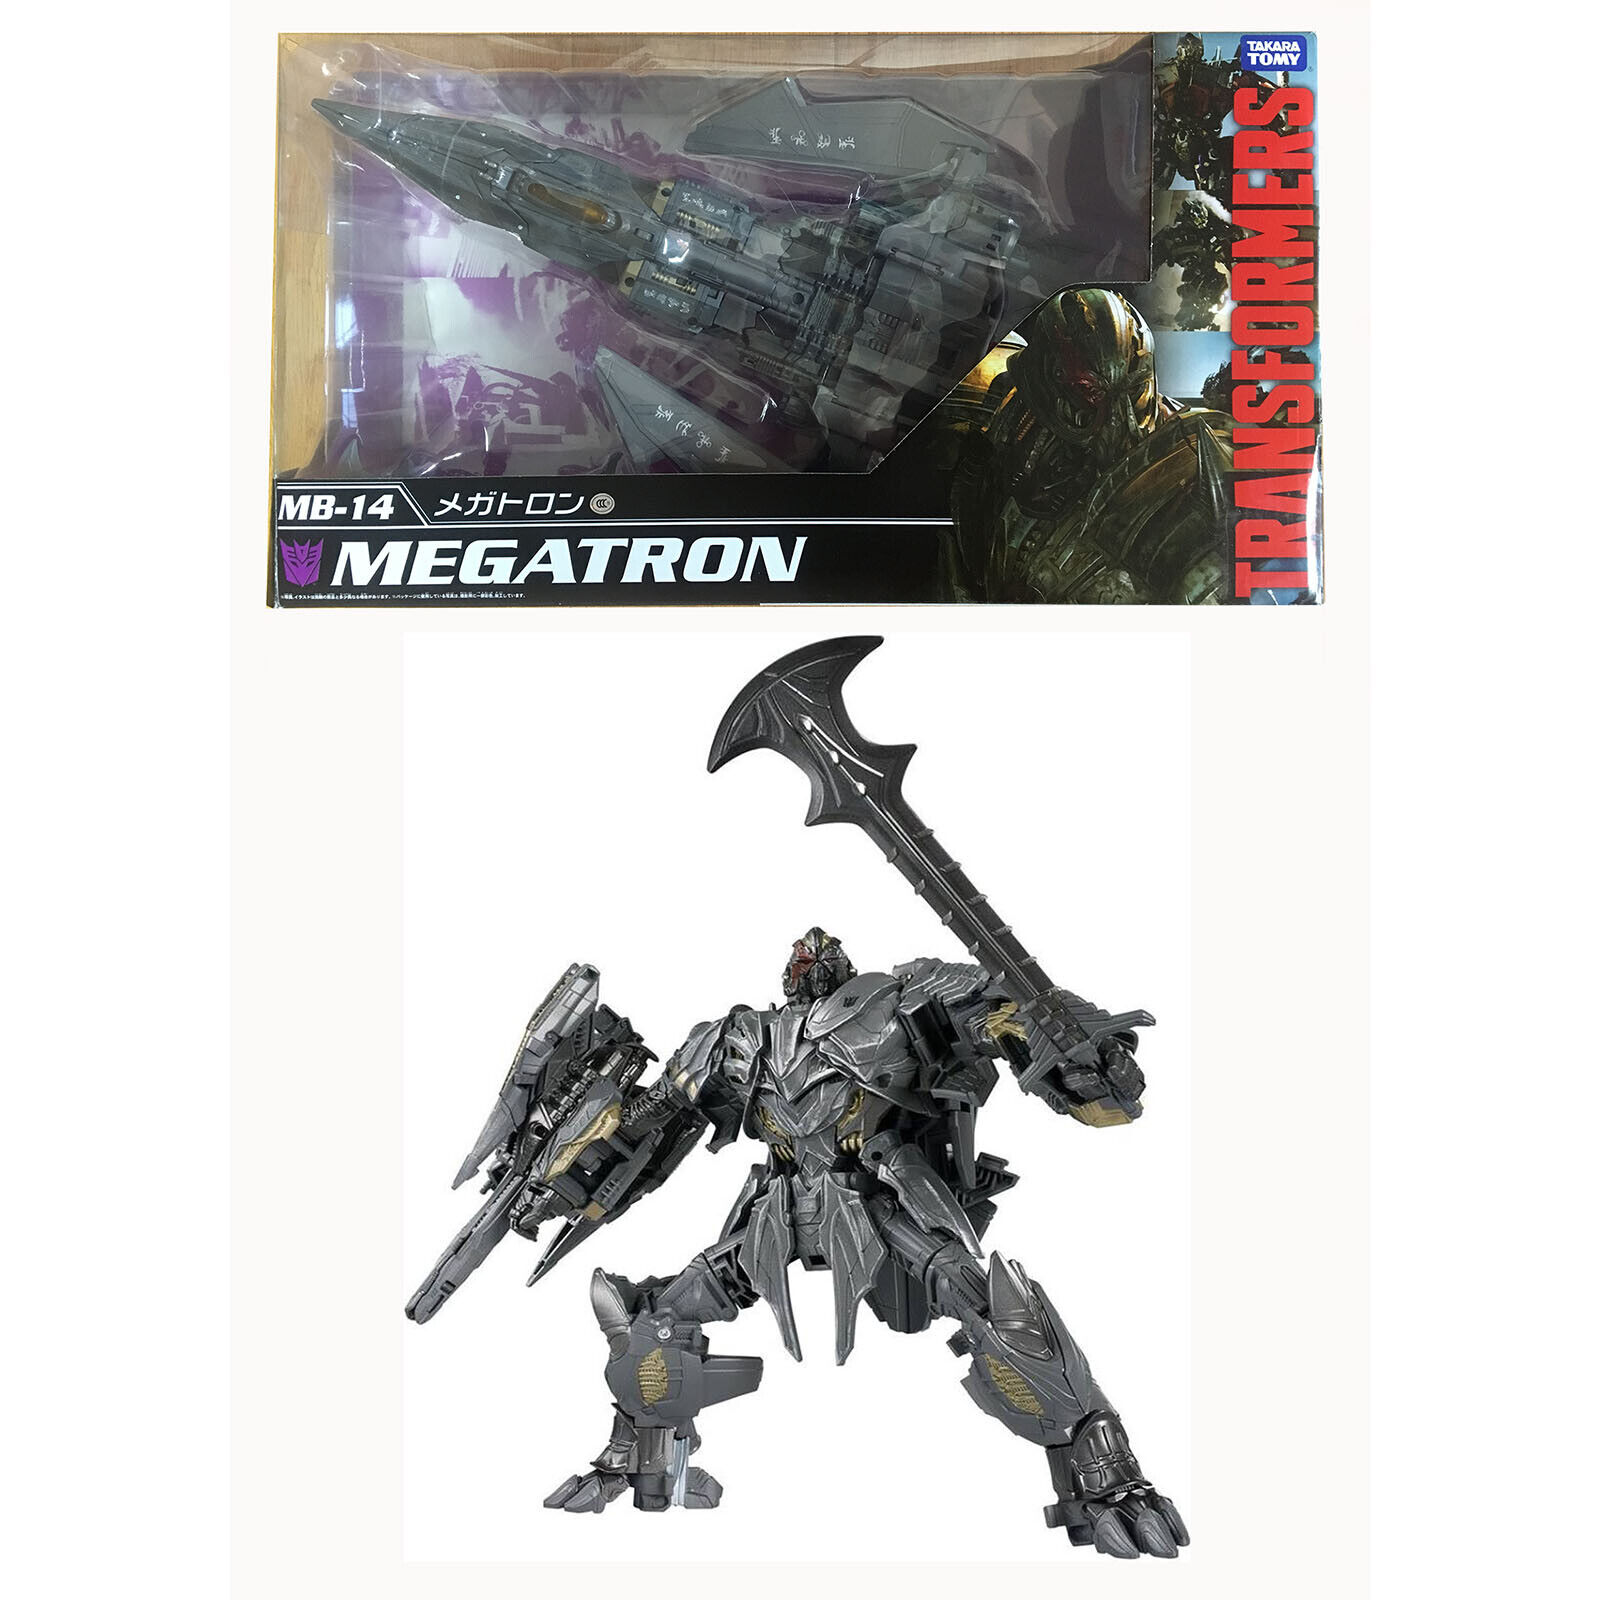 Transformers Movie The Best The Last Knight MB-14 Megatron Action Figure NEU